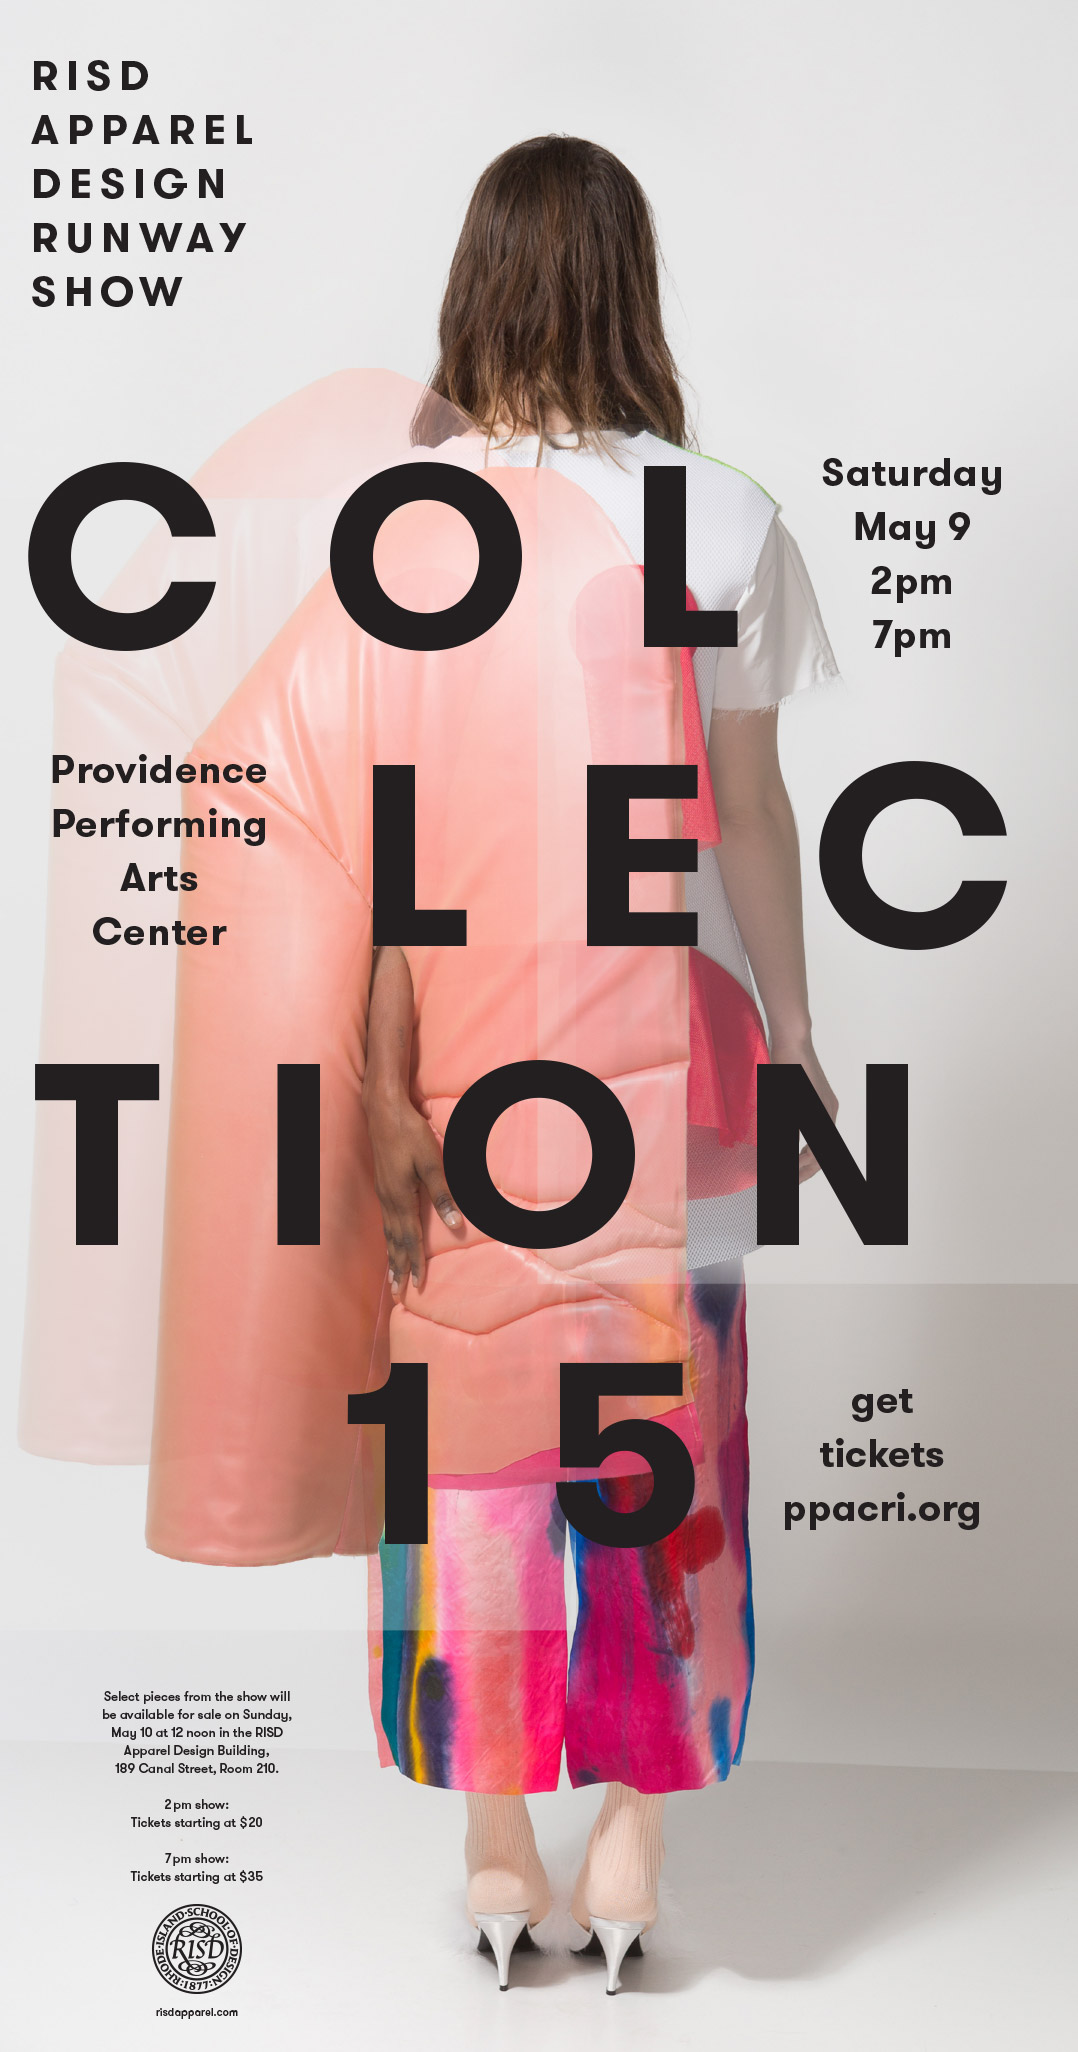 RISD Collection 2015 Poster